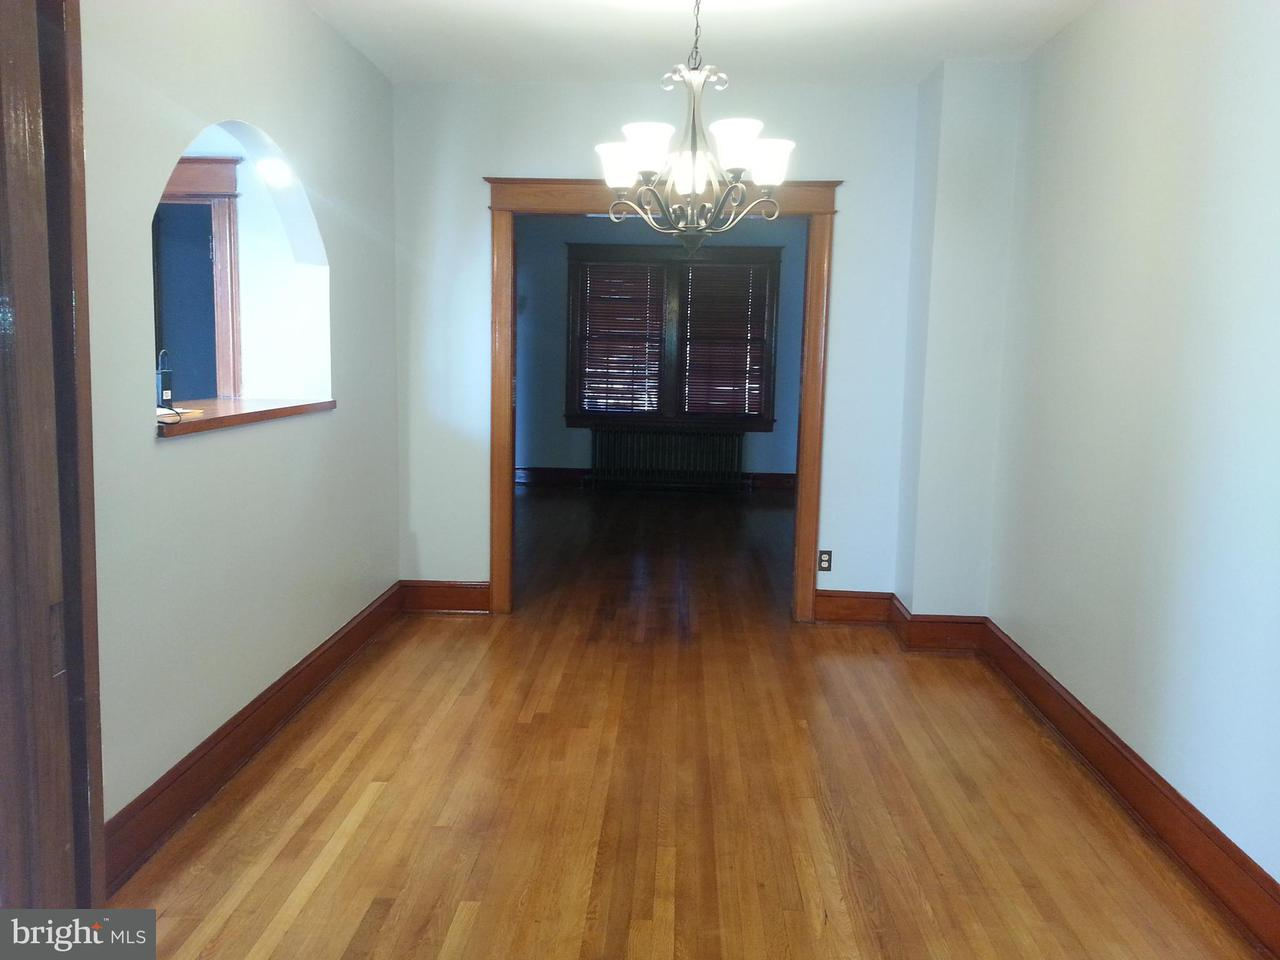 Additional photo for property listing at 216 Madison St NW  Washington, District Of Columbia 20011 United States